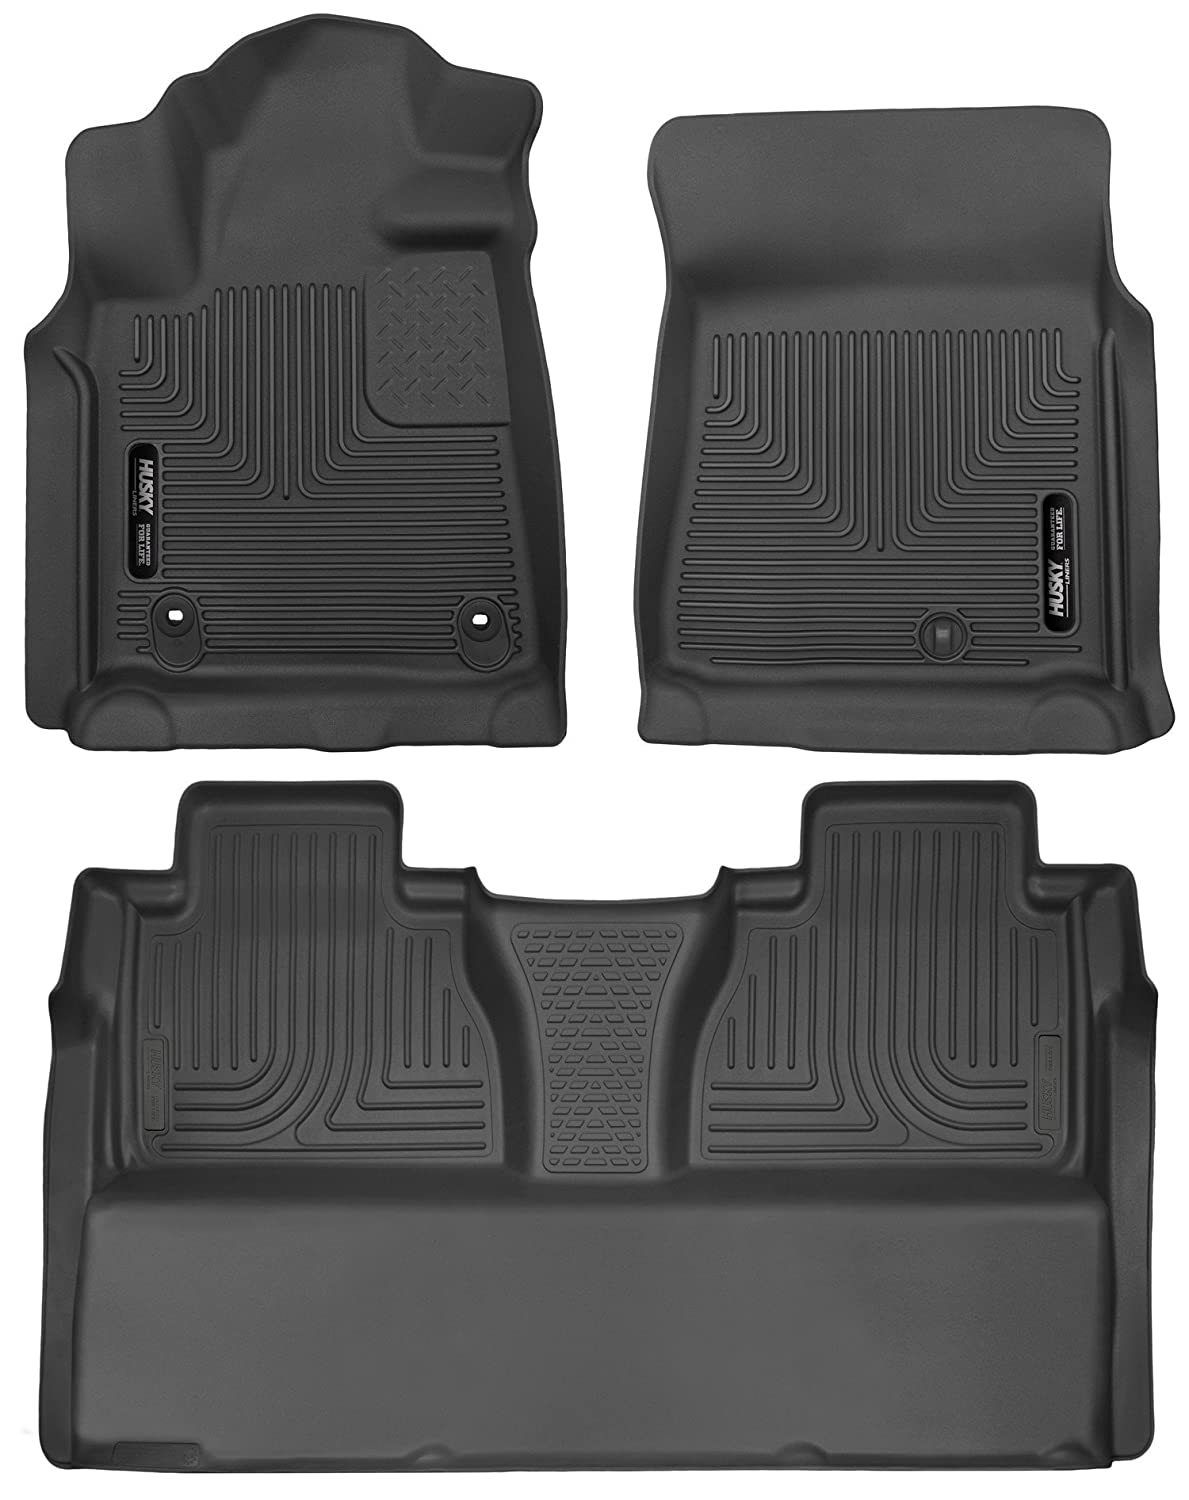 Husky Liners 53711-53841 - X-Act Contour - First and Second Rows (Full Coverage under Second Row Seat) All Weather Custom Fit Floor Liners for 2014-2018 Toyota Tundra CrewMax